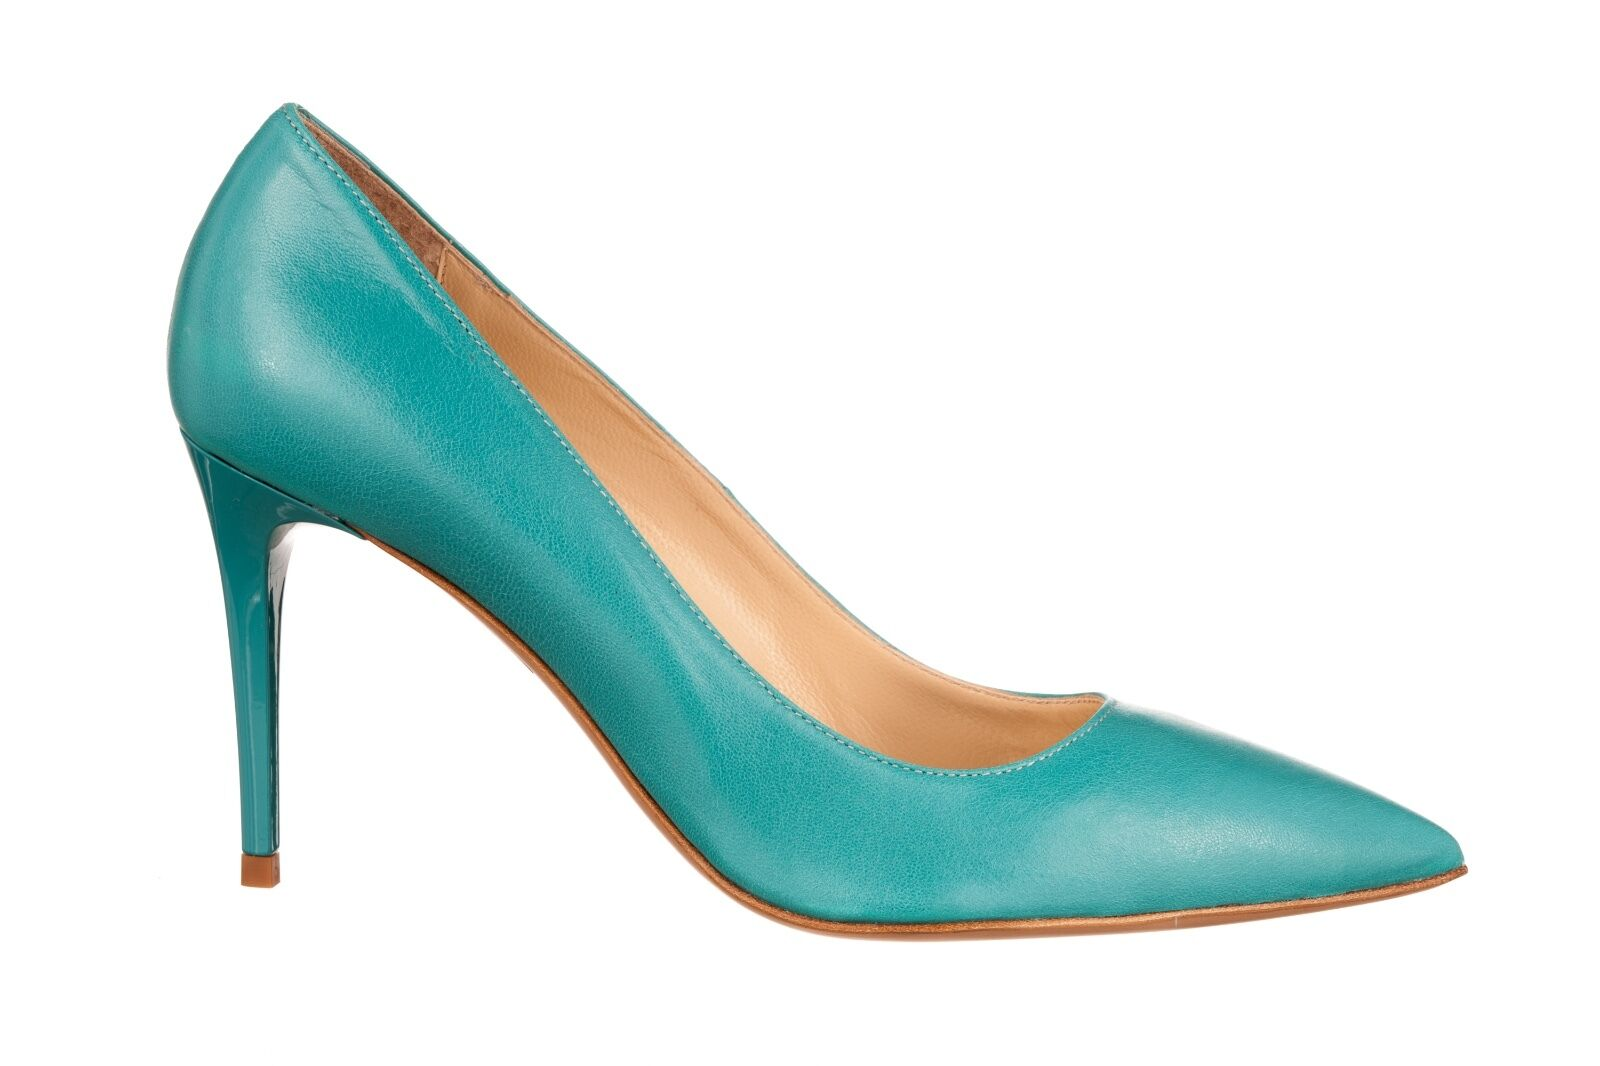 MORI MADE IN ITALY POINTY HIGH HEELS HEELS HEELS PUMPS SCHUHE LEATHER TURCHESE BLUE BLAU 41 66fb5a